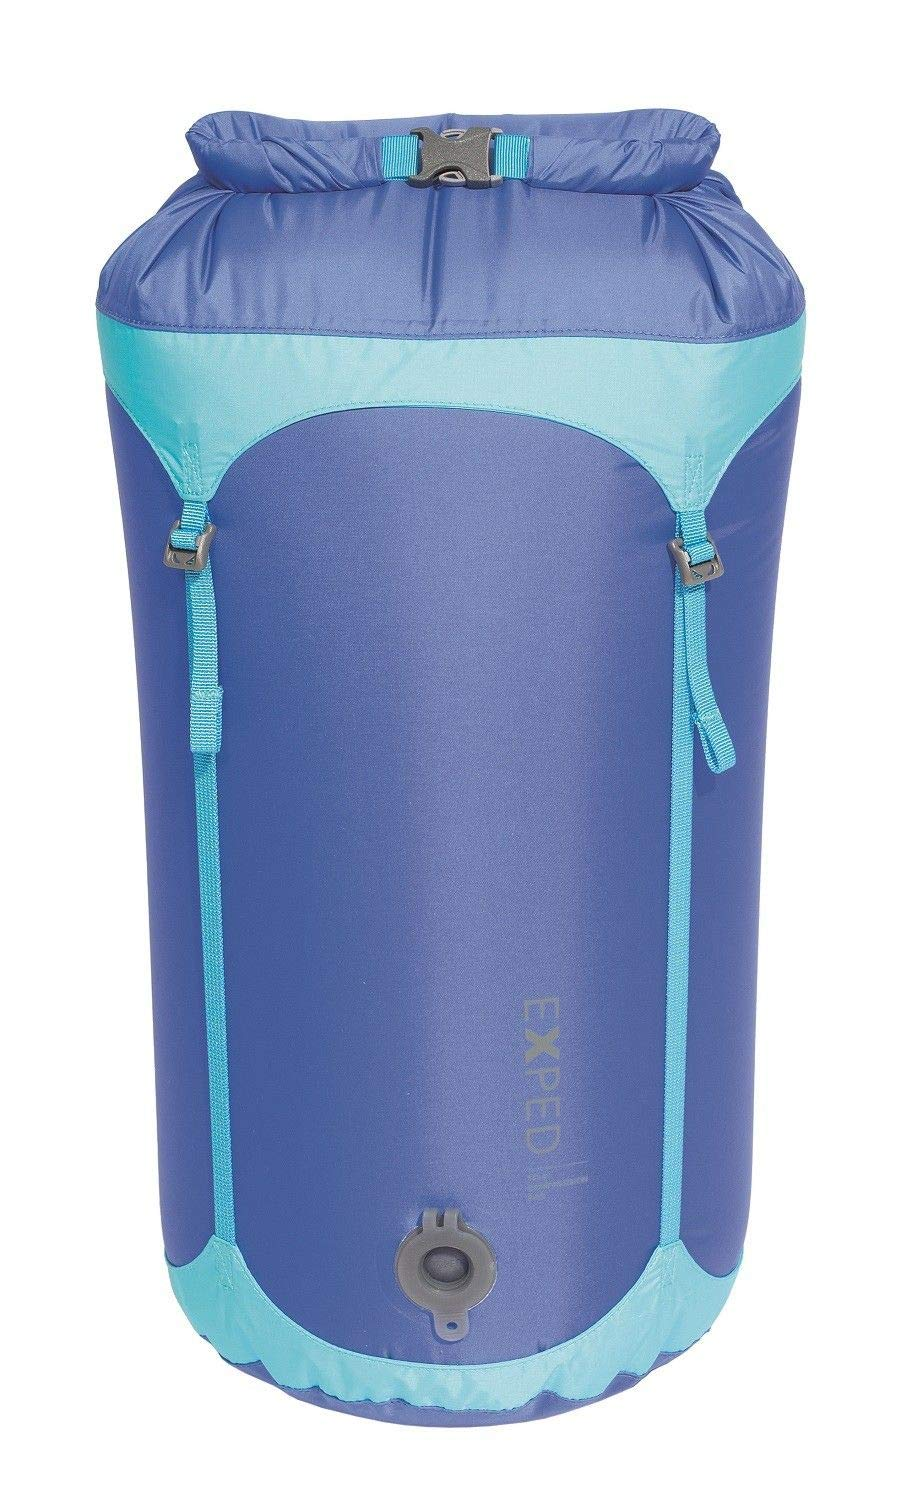 Exped Waterproof Telecompression Bag - Blue Medium by Exped